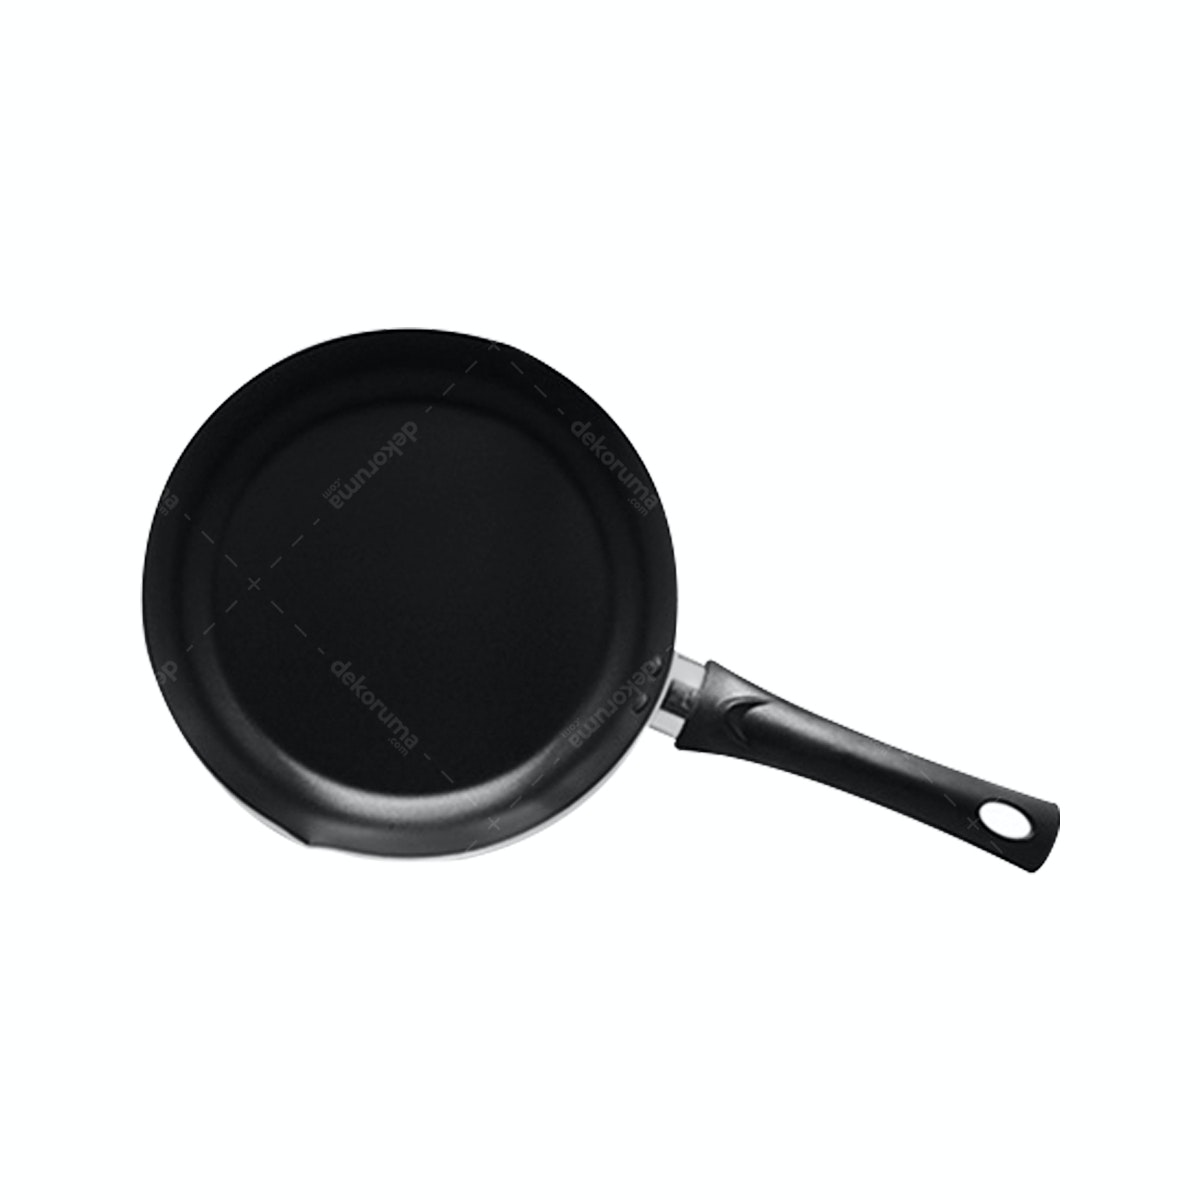 Fincook Penggorengan Non Stick Coating Bibir Tuang 24 cm FP2401TF